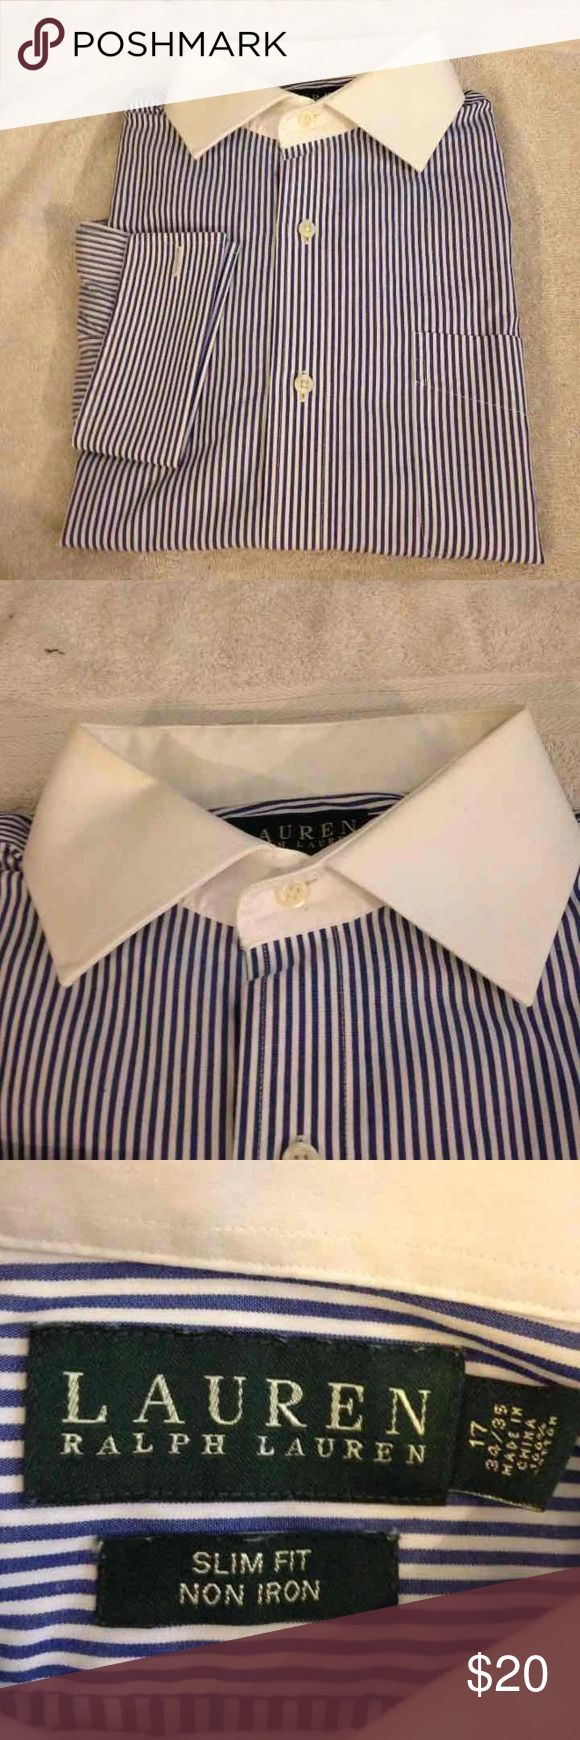 Ralph Lauren Blue Stripe Slim Shirt 17 34/35 Lauren Ralph Lauren Blue and White Stripe White Collar French Cuff Slim Fit Dress Shirt size 17 34/35! Like new! Please make reasonable offers and bundle! Ask questions! :) Lauren Ralph Lauren Shirts Dress Shirts